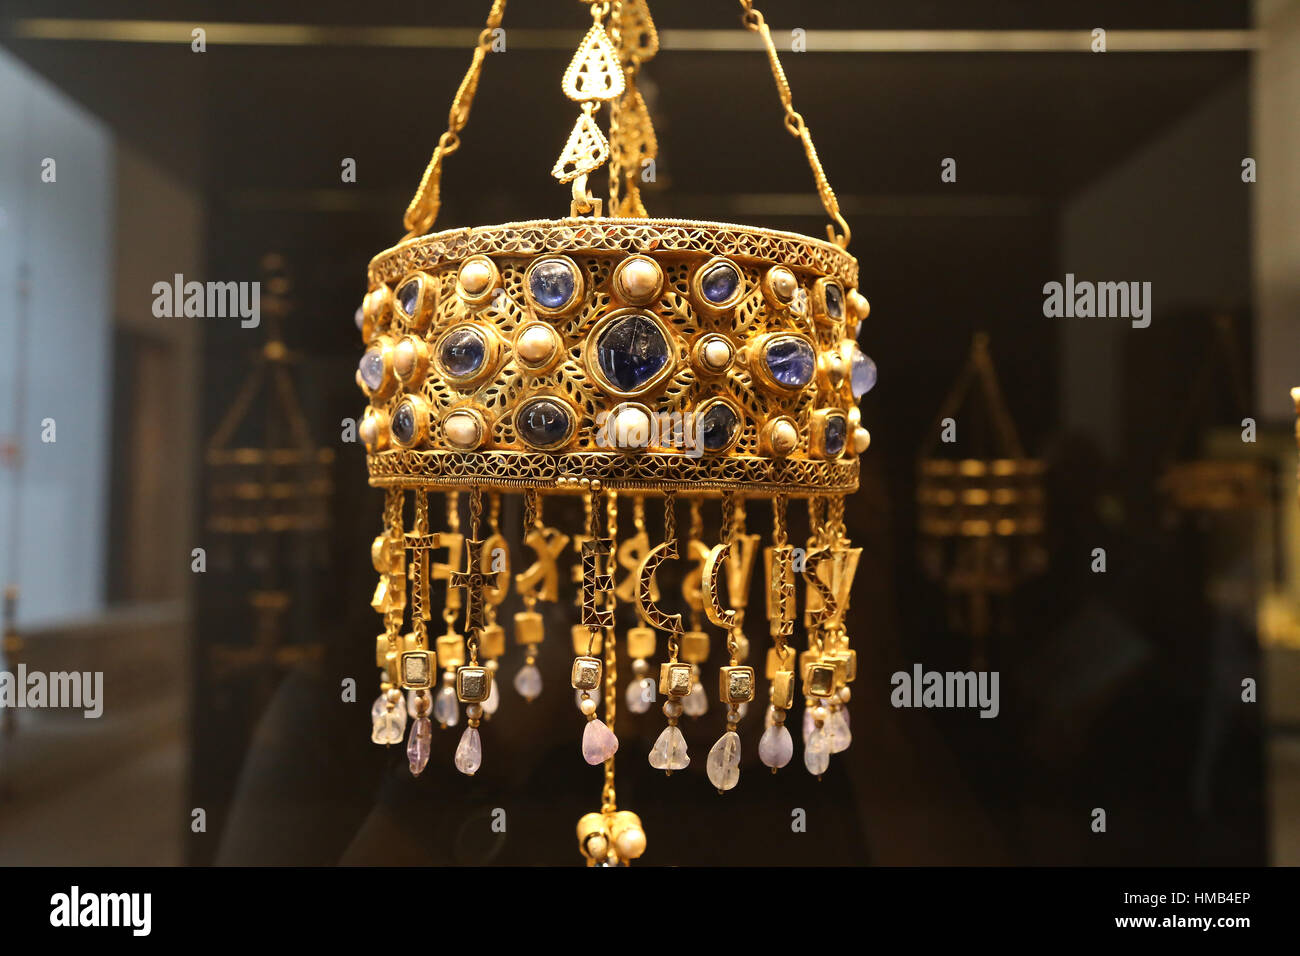 Treasure of Guarrazar. Votive crown of the visigoth king Reccesuinth. Gold and precious stones. 7th century. Guadamur, - Stock Image